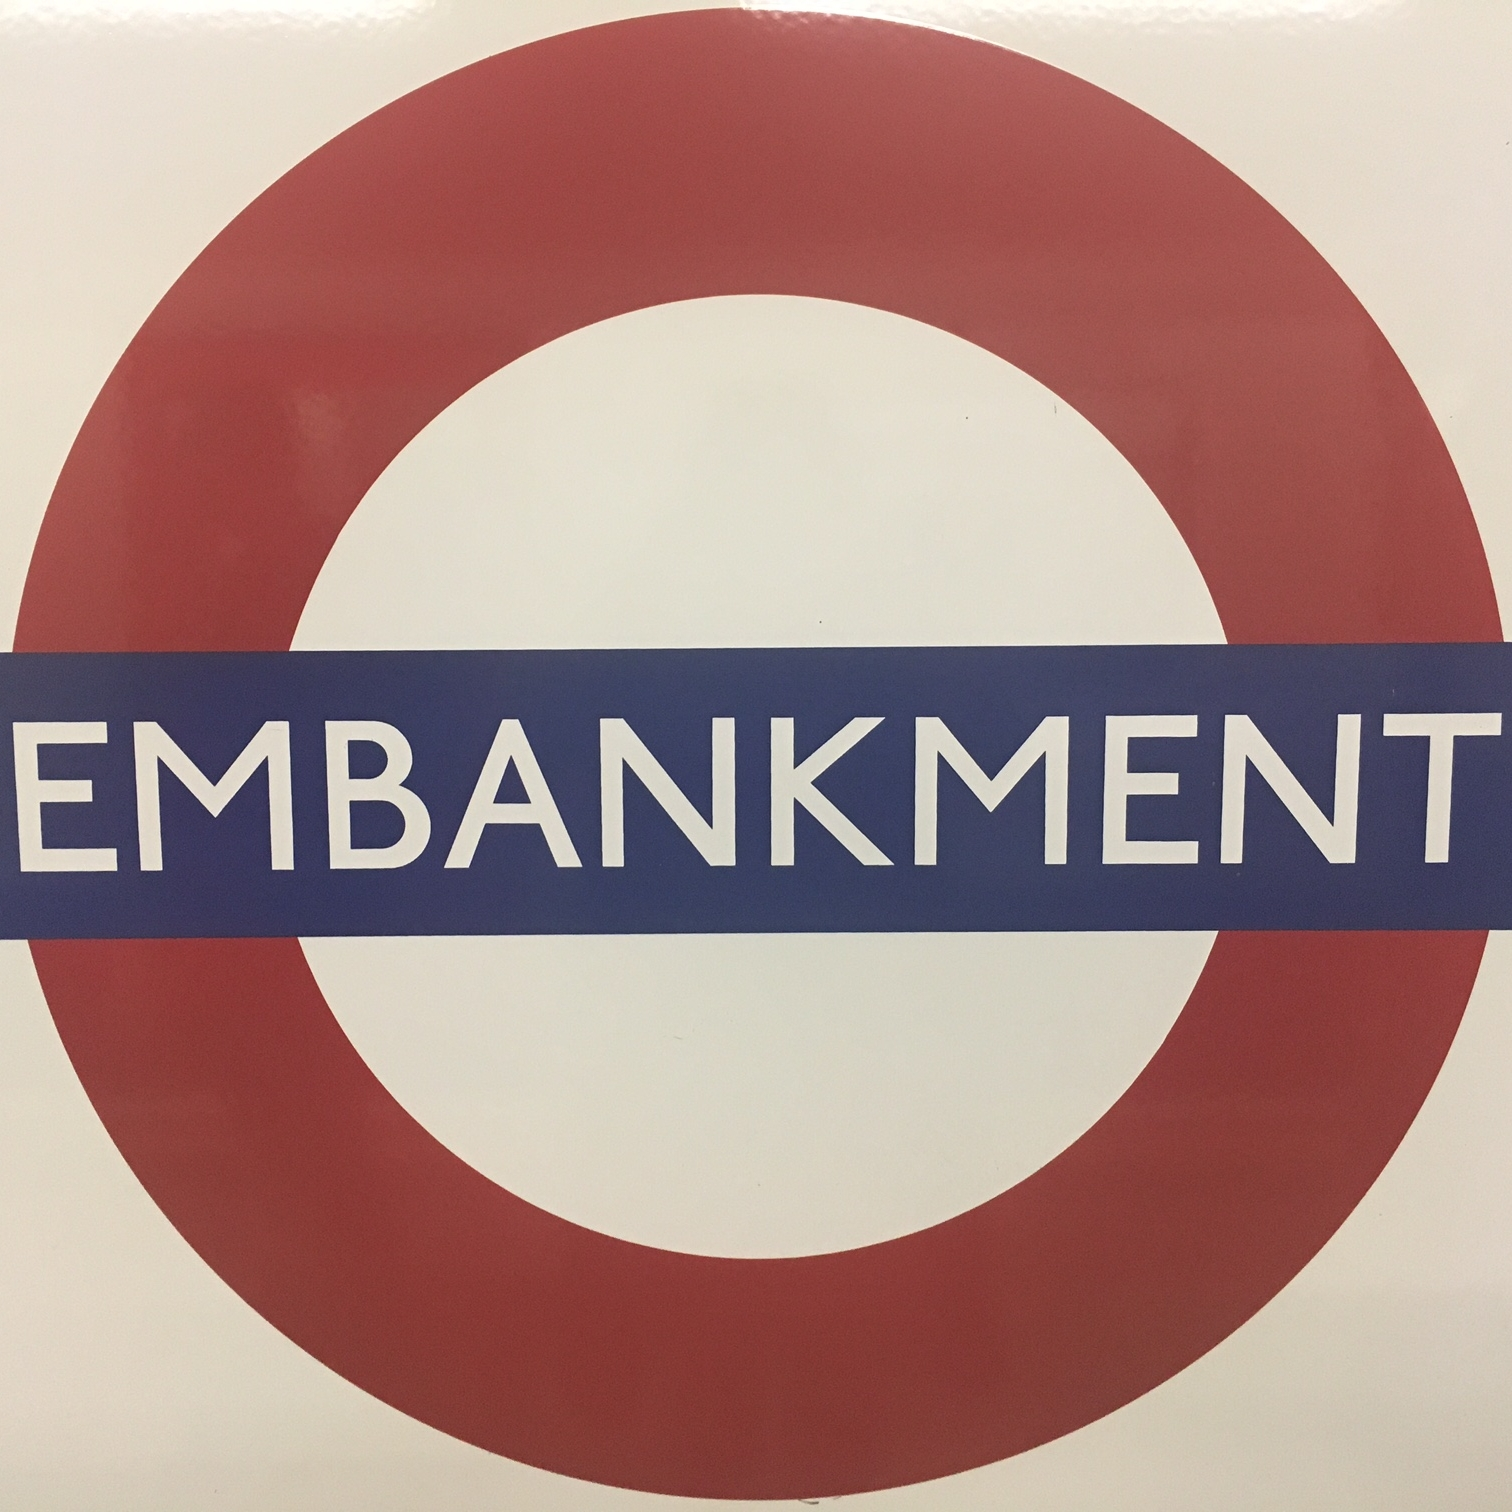 Embankment Tube station, London. The Doubtful Traveller